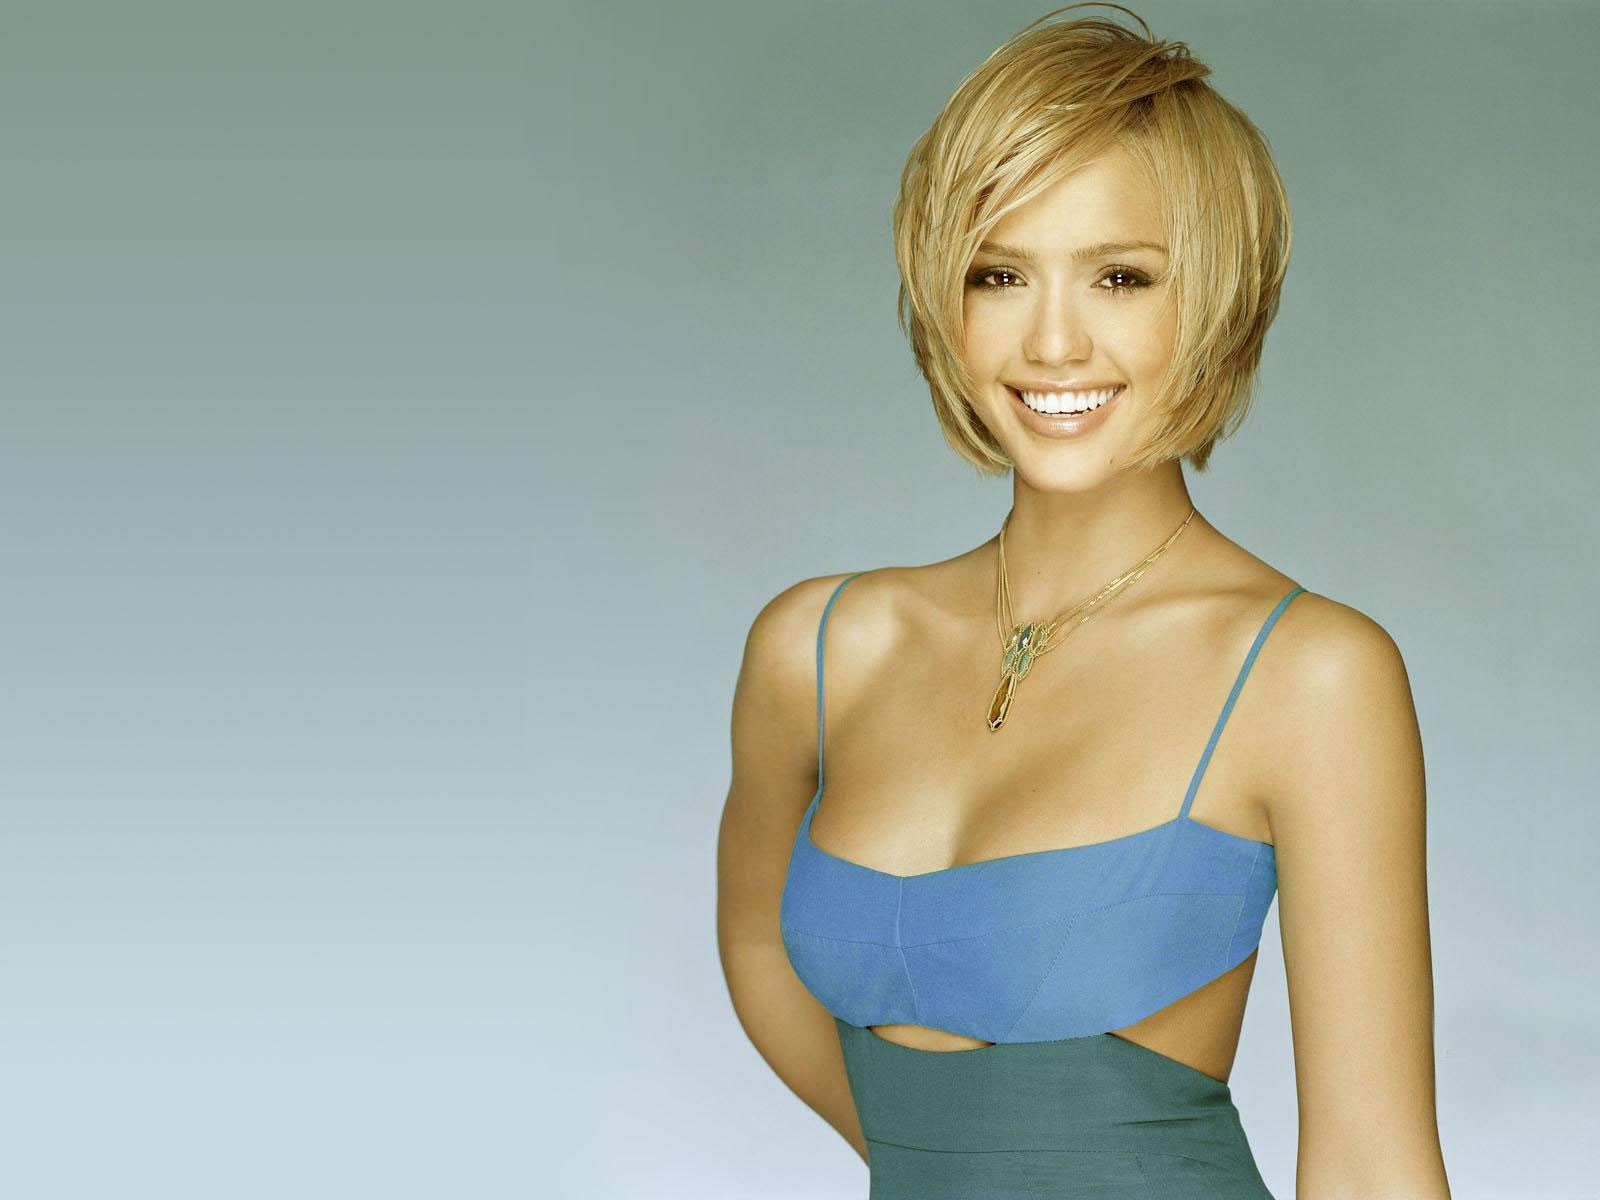 Jessica Alba HQ Wallpaper   HD Wallpapers   Widescreen Wallpapers Wallpaper